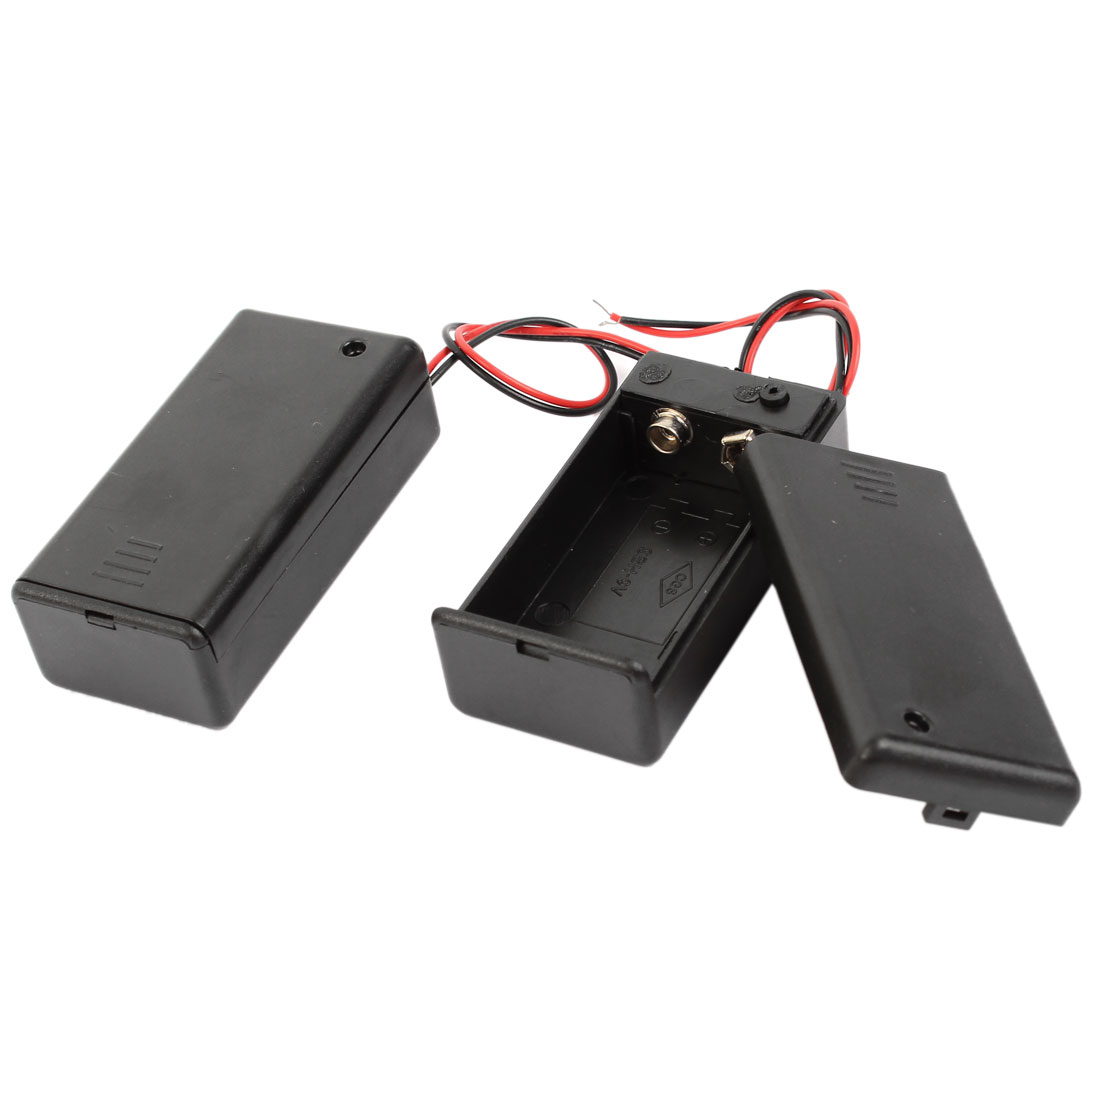 2 Pcs Wired Leads Black Plastic 9V Battery Storage Case Slot Holder